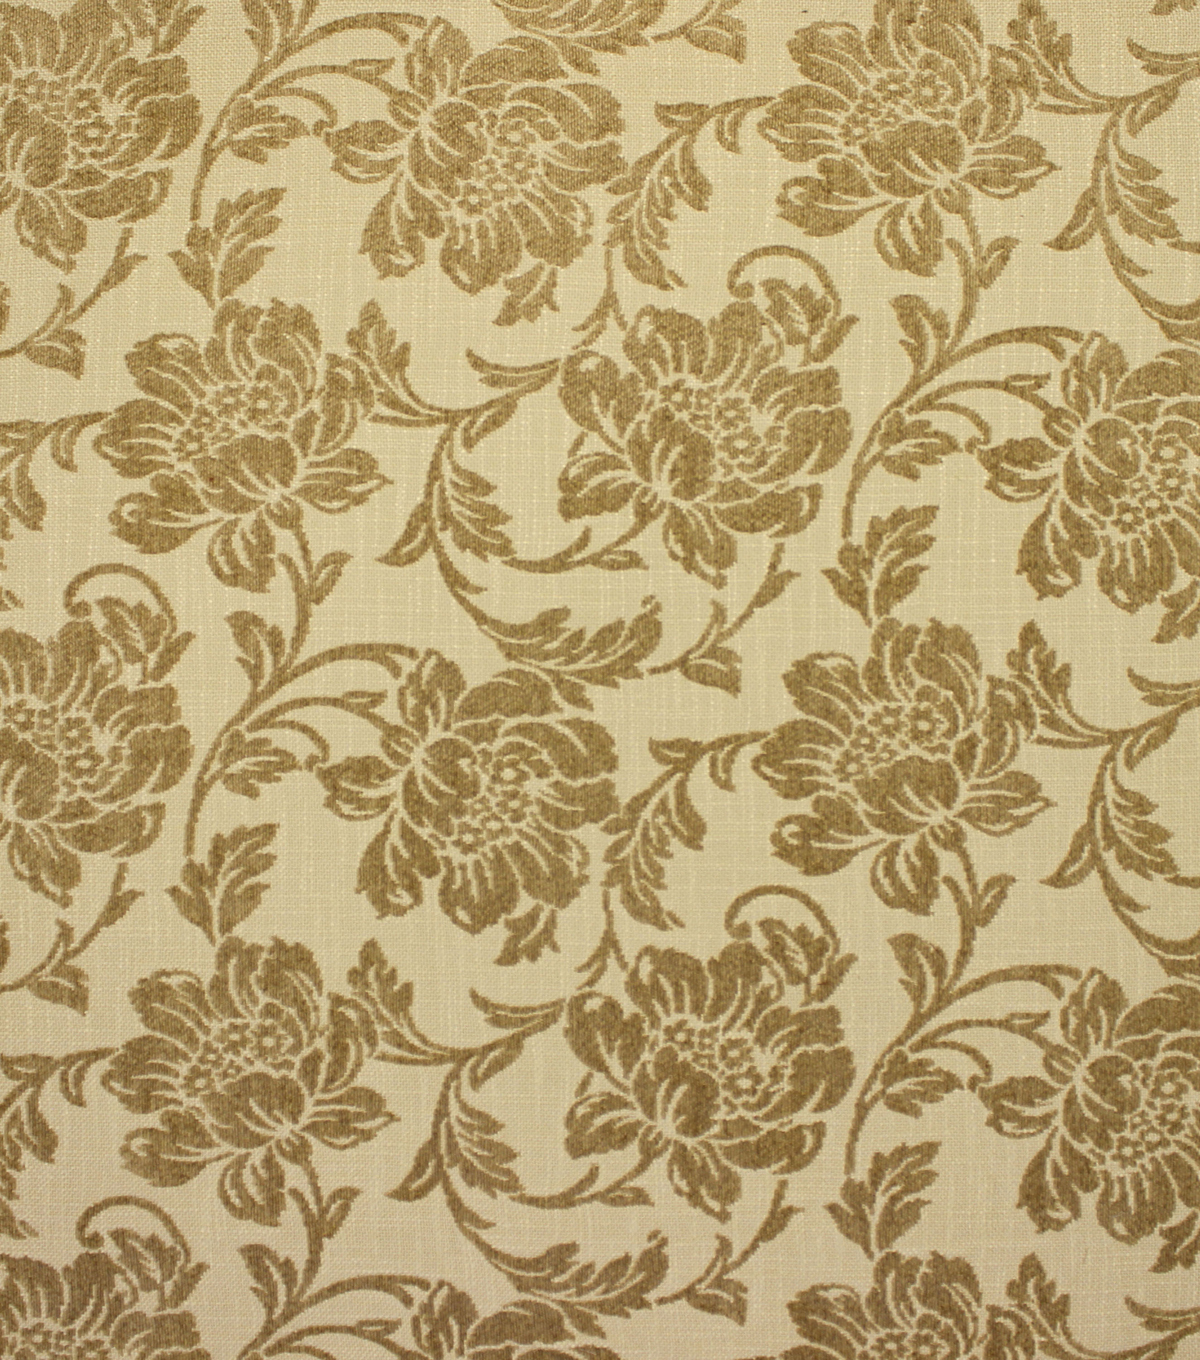 Home Decor 8\u0022x8\u0022 Fabric Swatch-Upholstery Fabric Barrow M7439-5816 Linen